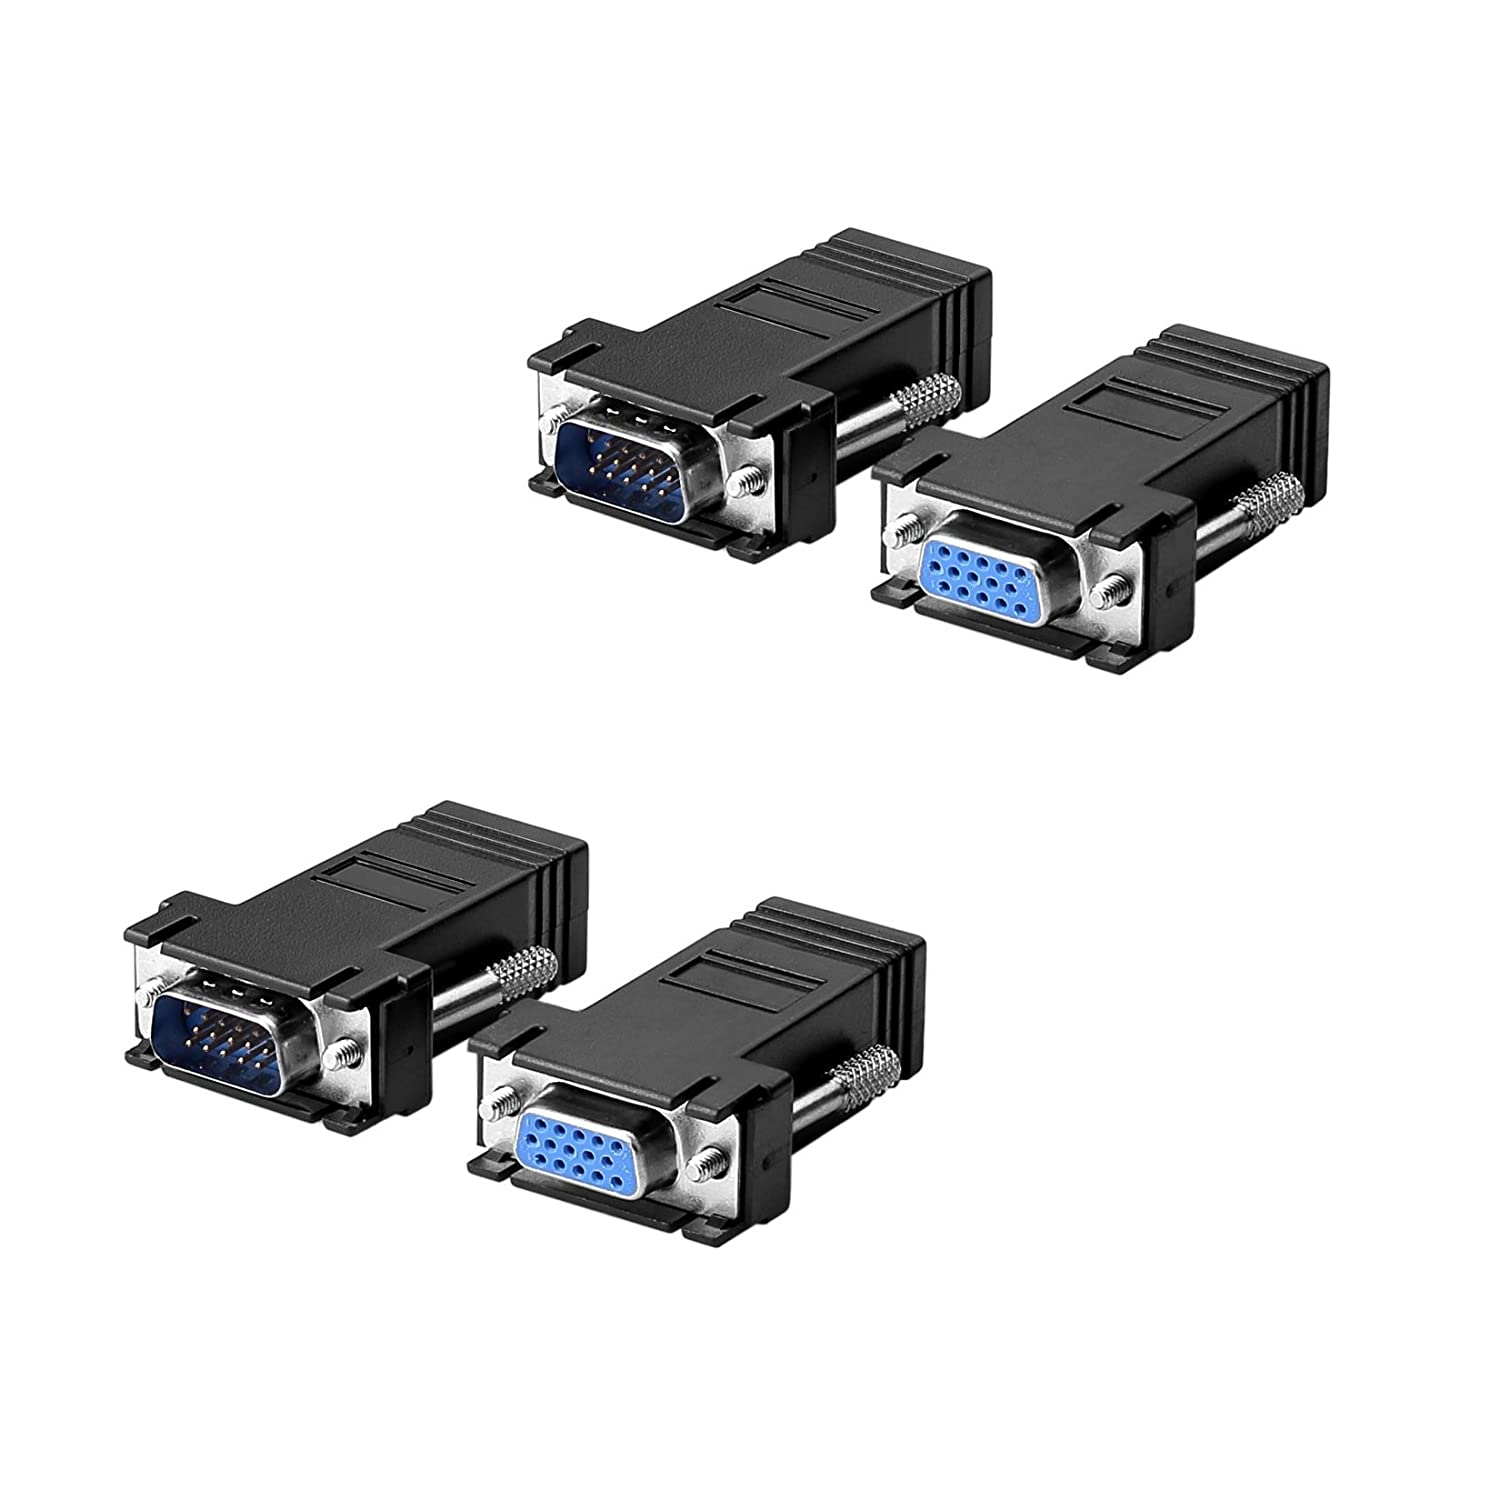 Sienoc 2 set (4pcs) Coppia ADATTATORE VGA PROLUNGA VIA CAT5/CAT6/RJ45 Cavo Adapter Kit EXTENDER oc-737